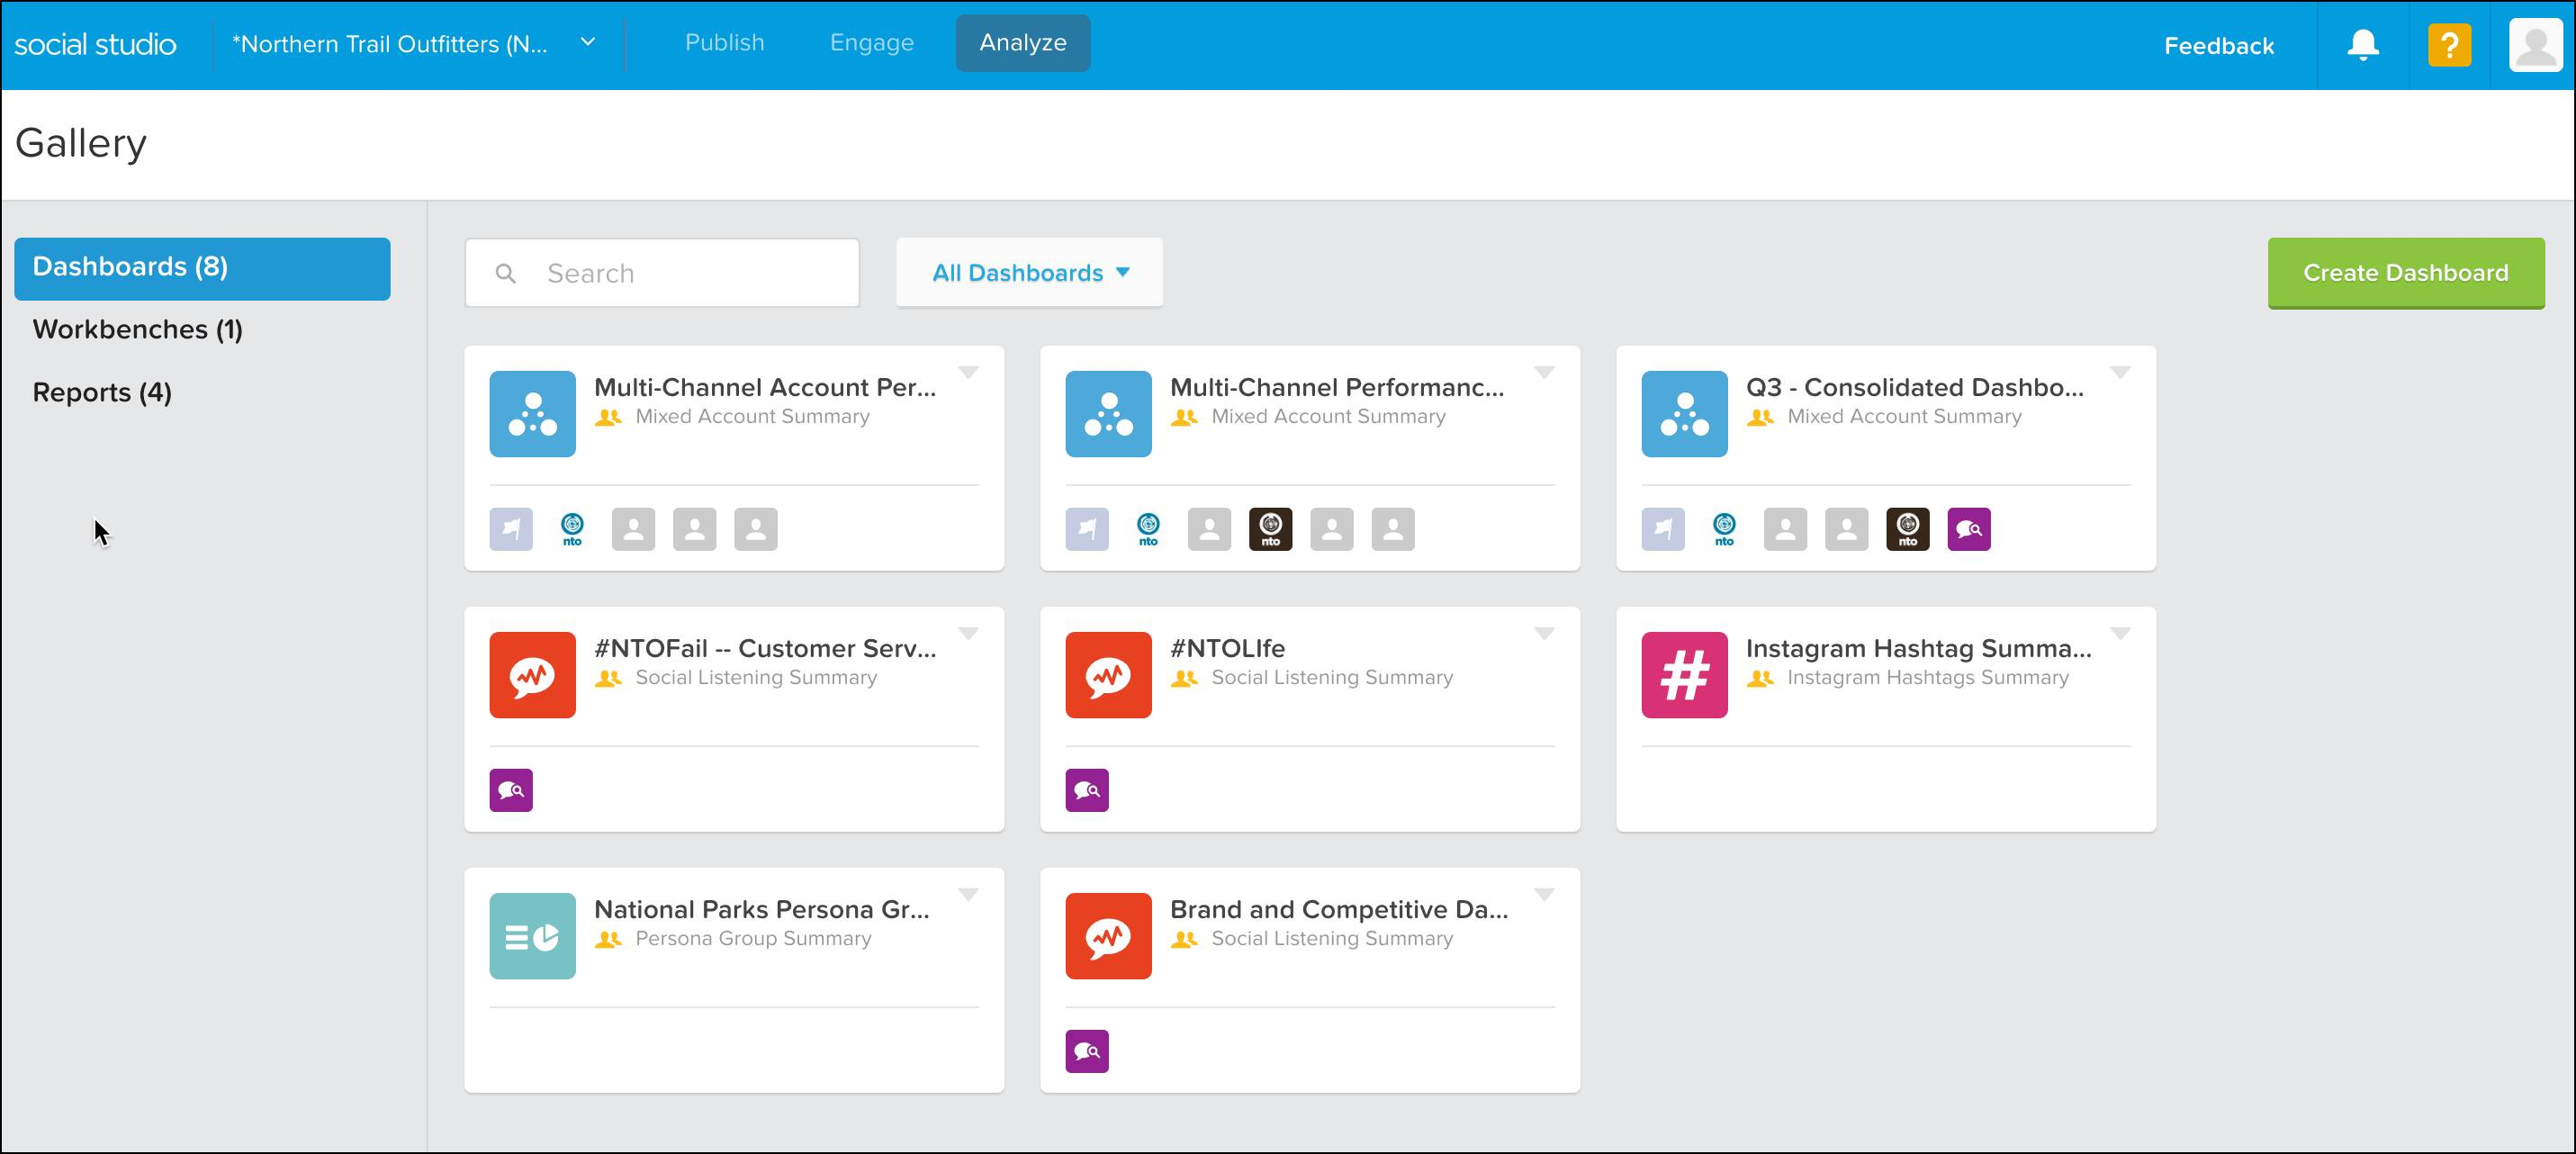 A list of all dashboards in a Social Studio account.